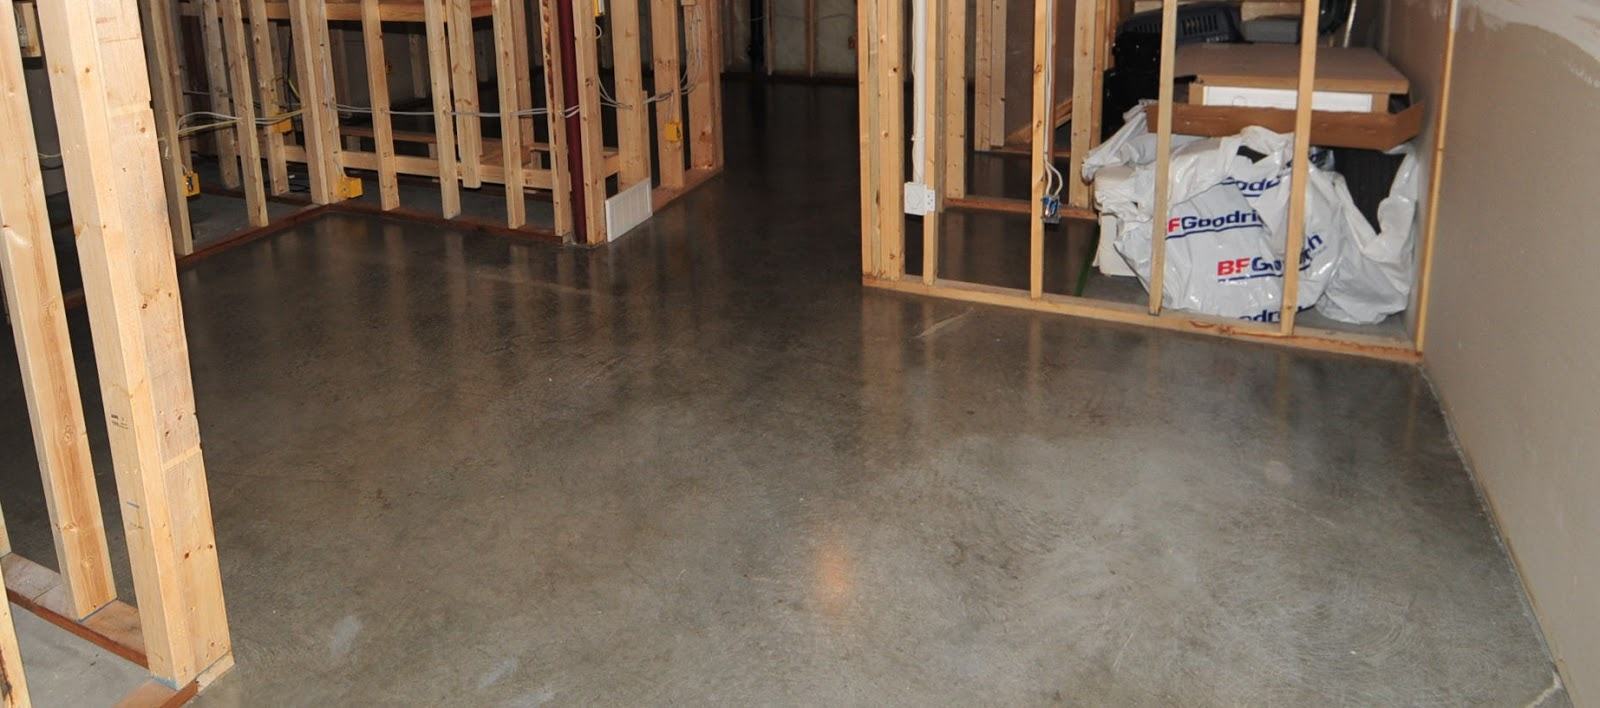 MODE CONCRETE Hip And Modern Basement Concrete Floors We Are Specialists A